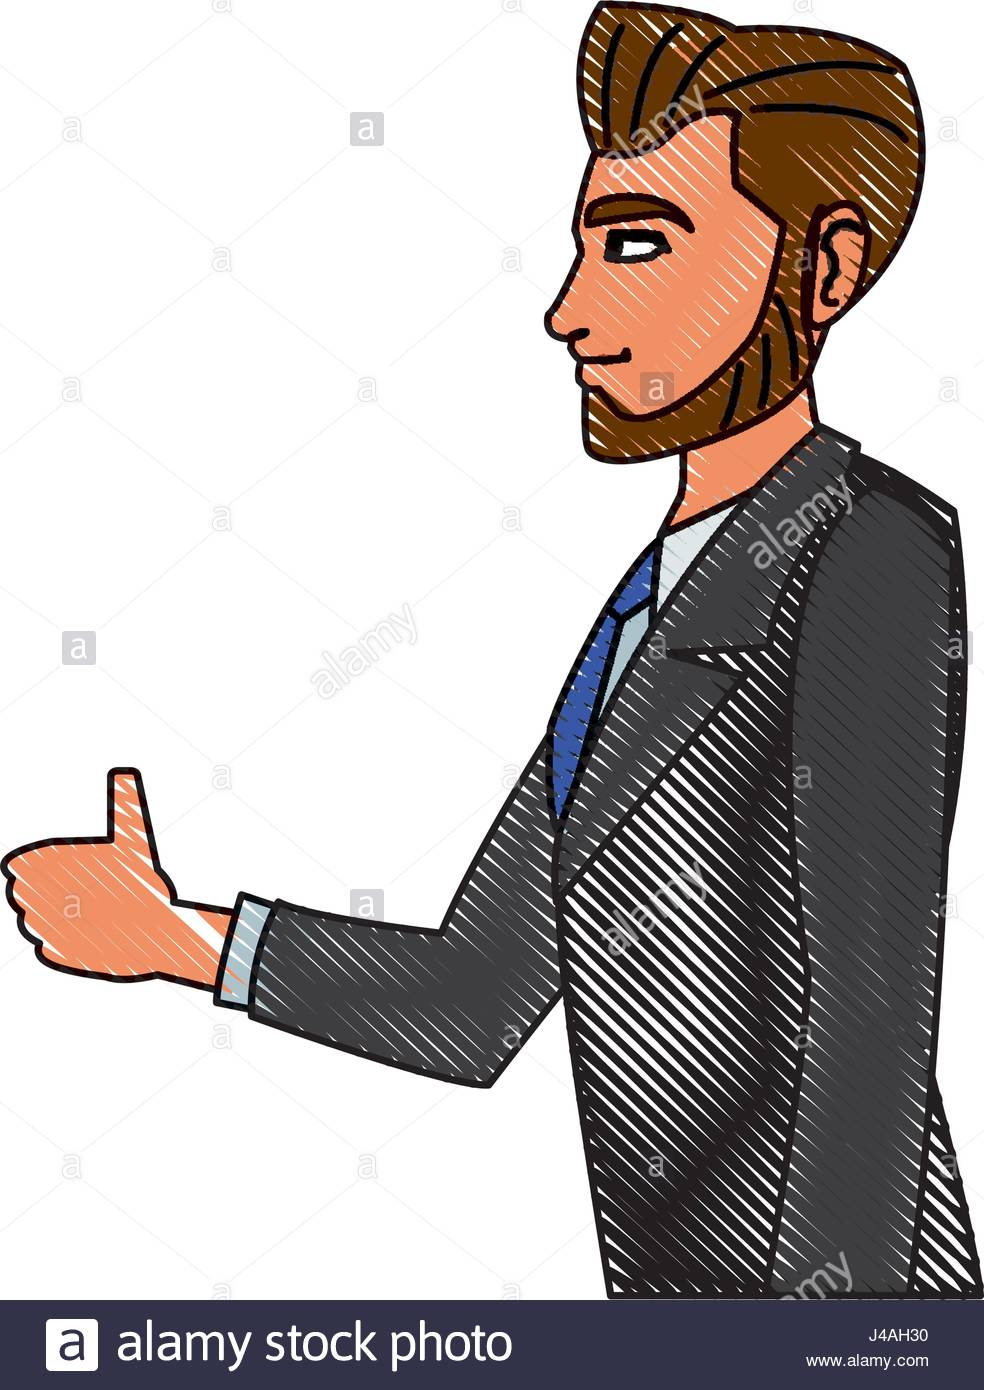 984x1390 Drawing Character Business Man With Suit Profile Stock Vector Art